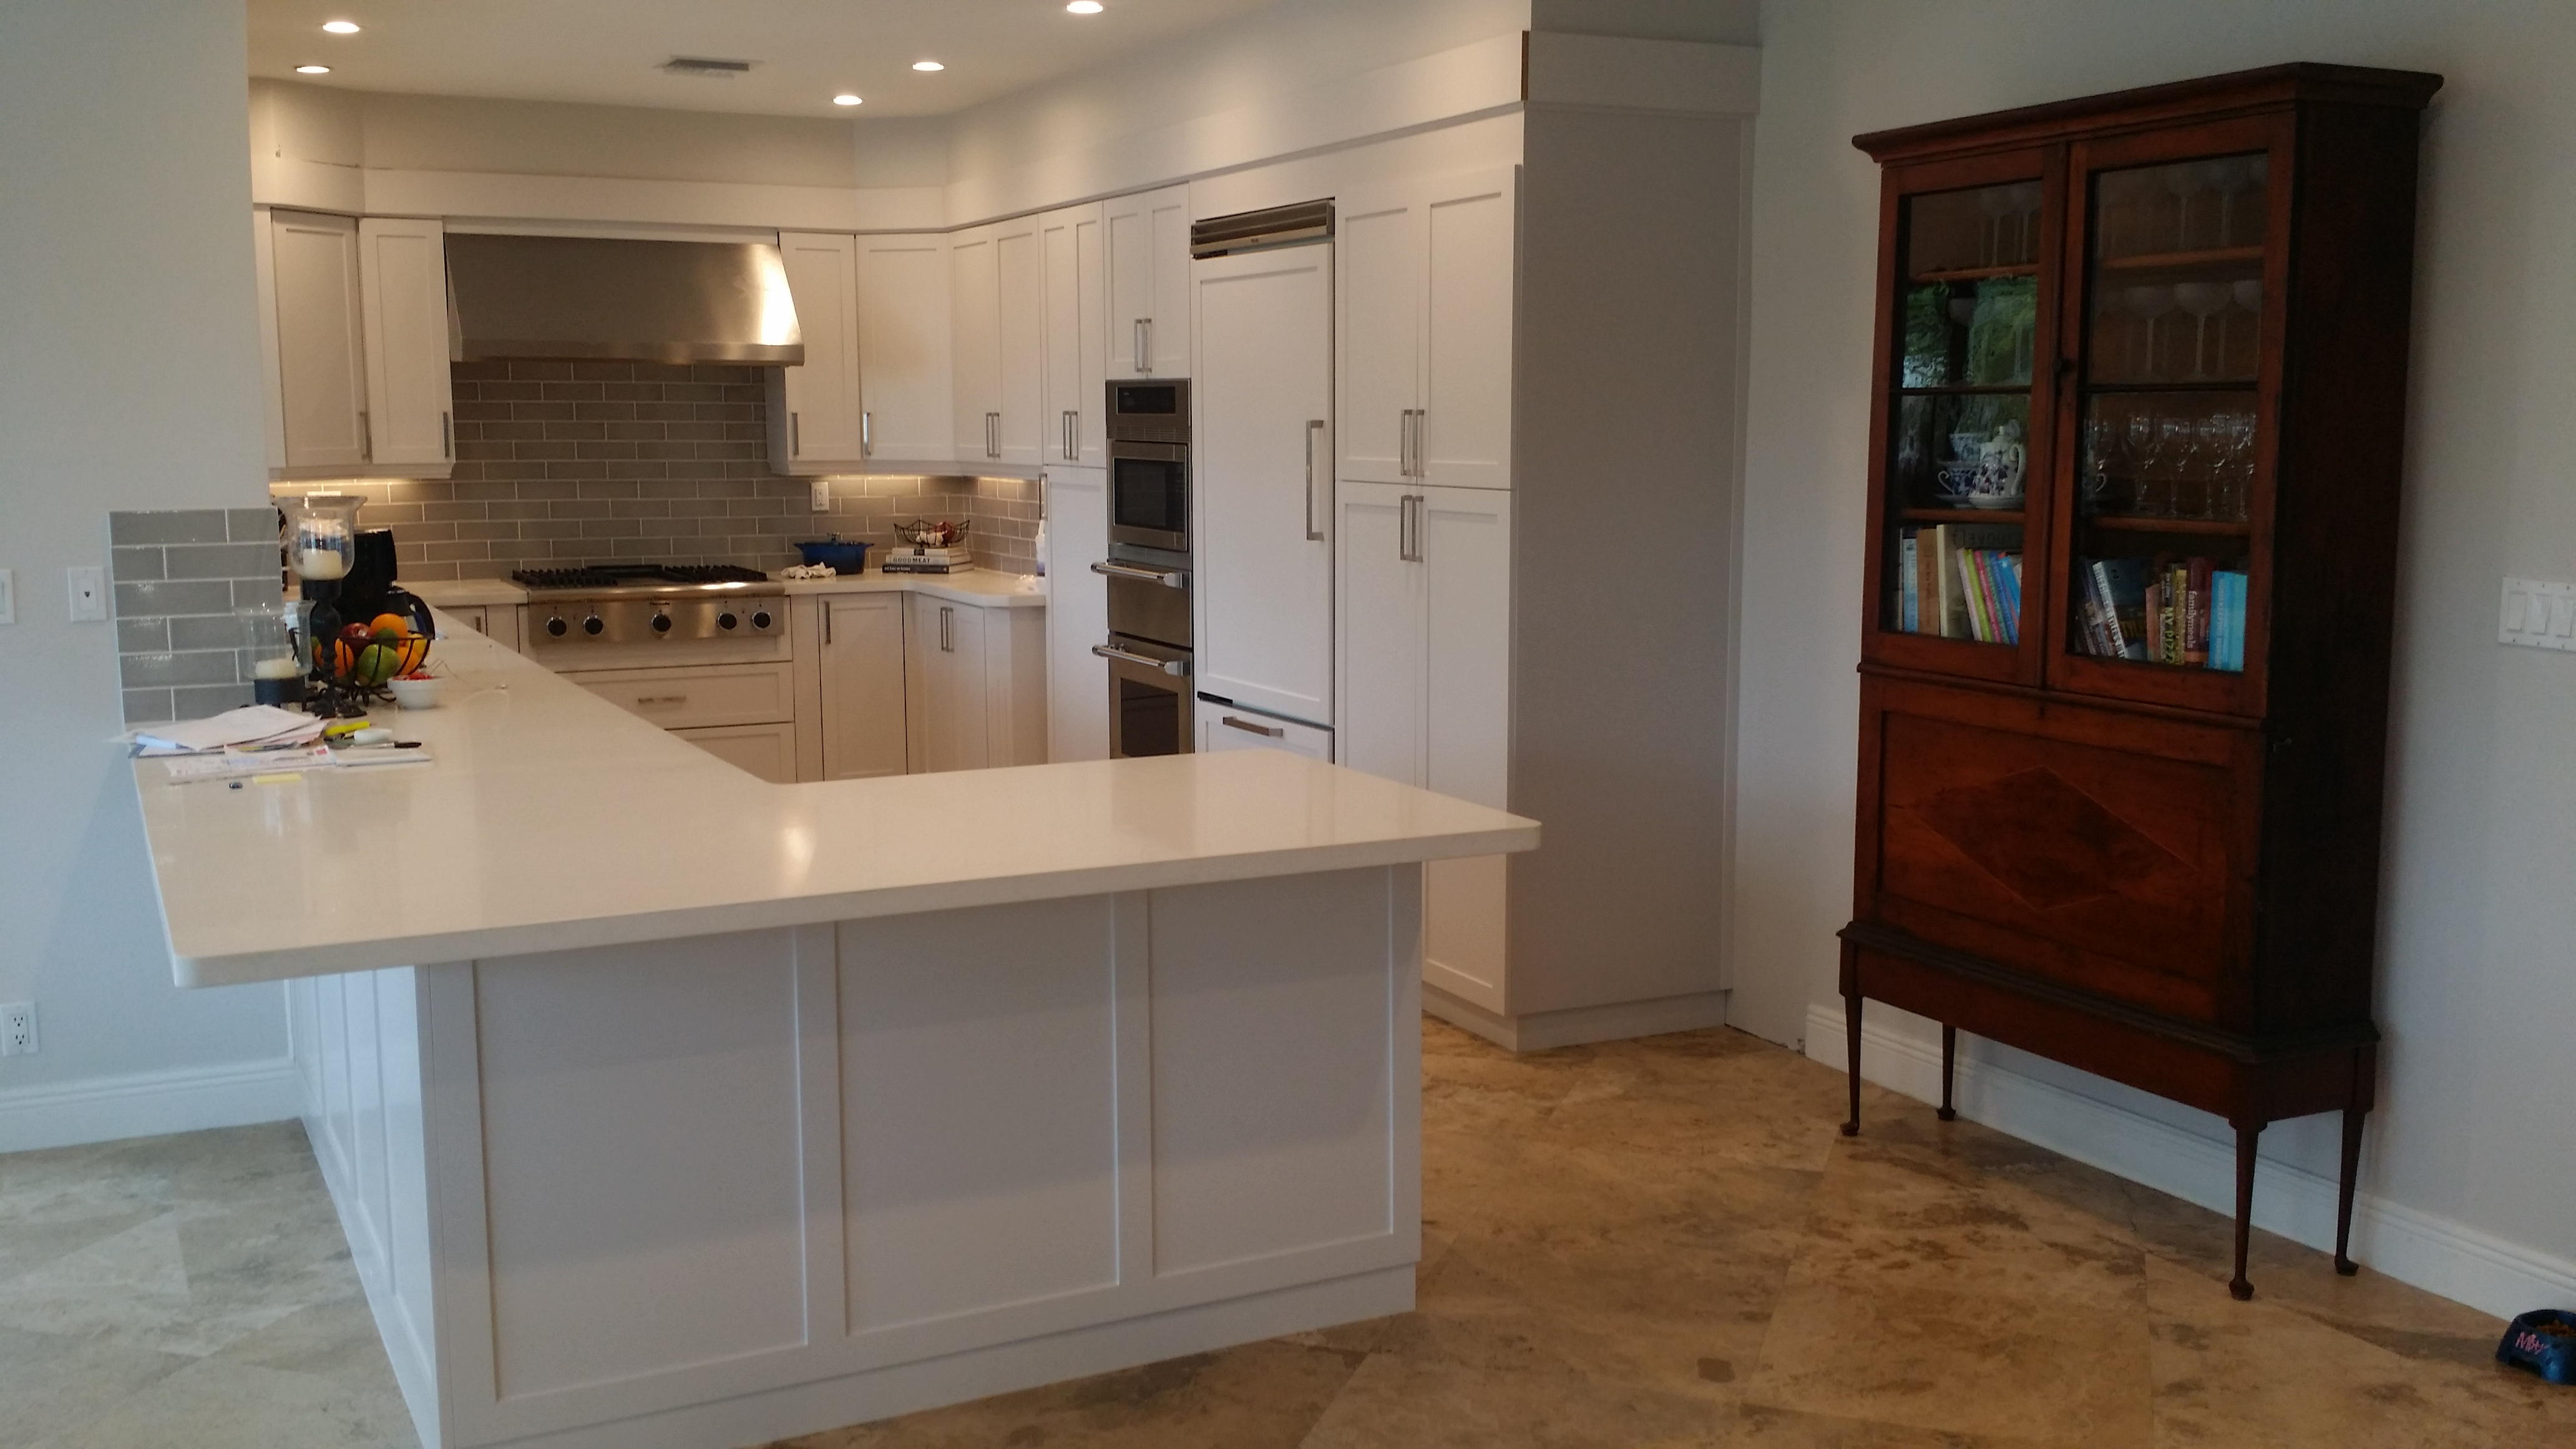 Best Kitchen Gallery: Before After Gallery New Style Kitchen Cabi S Corp of Custom Kitchen Cabinets Miami on cal-ite.com